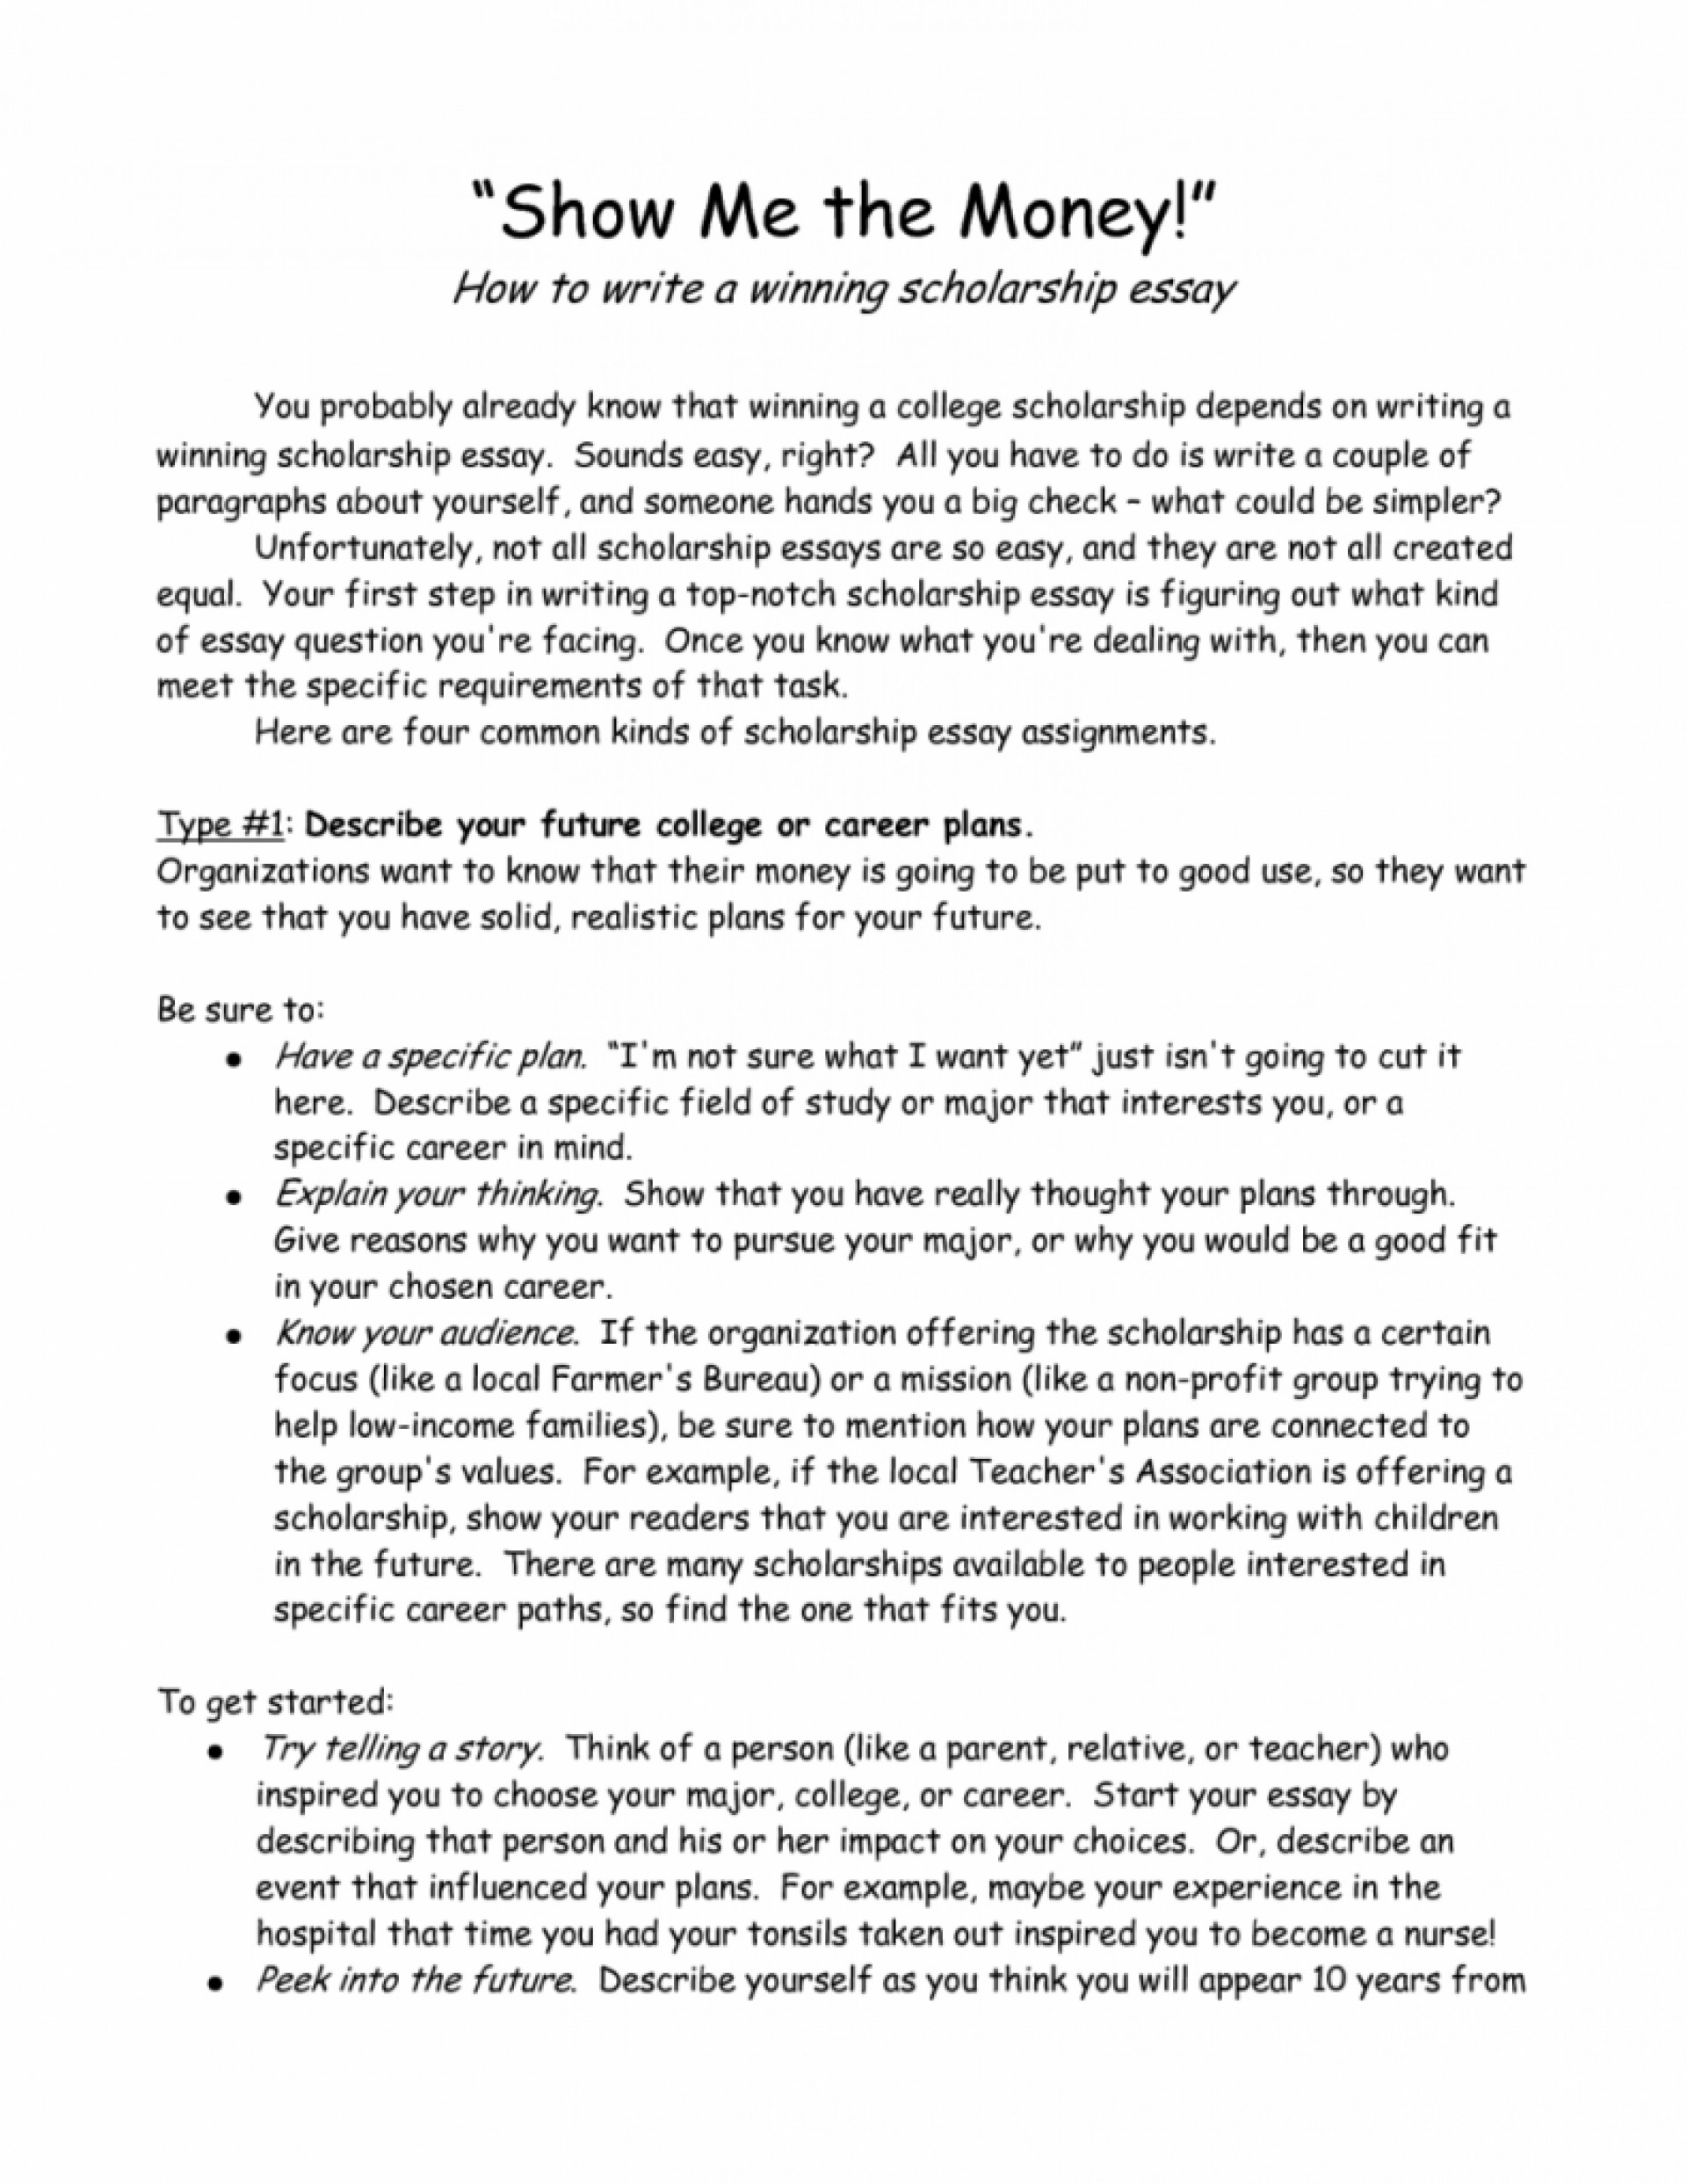 014 Travel Essay Example On Travelling The School Bus Examples How To Write Business Cover Letter Experience Sample Tagalog Journal Time Writing Photo Pdf Unique Definition Submissions 1920